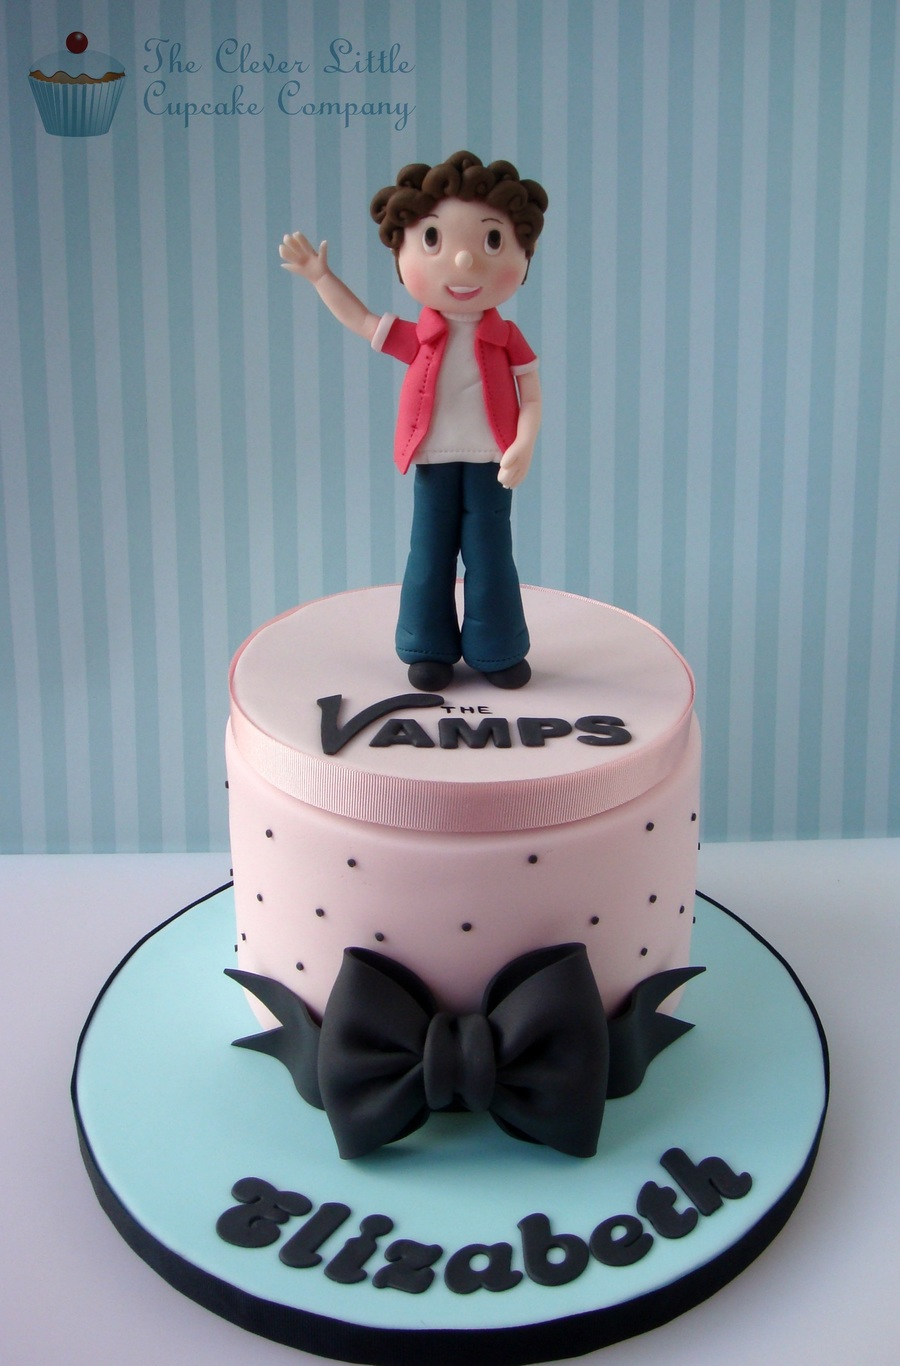 The Vamps Birthday Cake Cakecentral Com